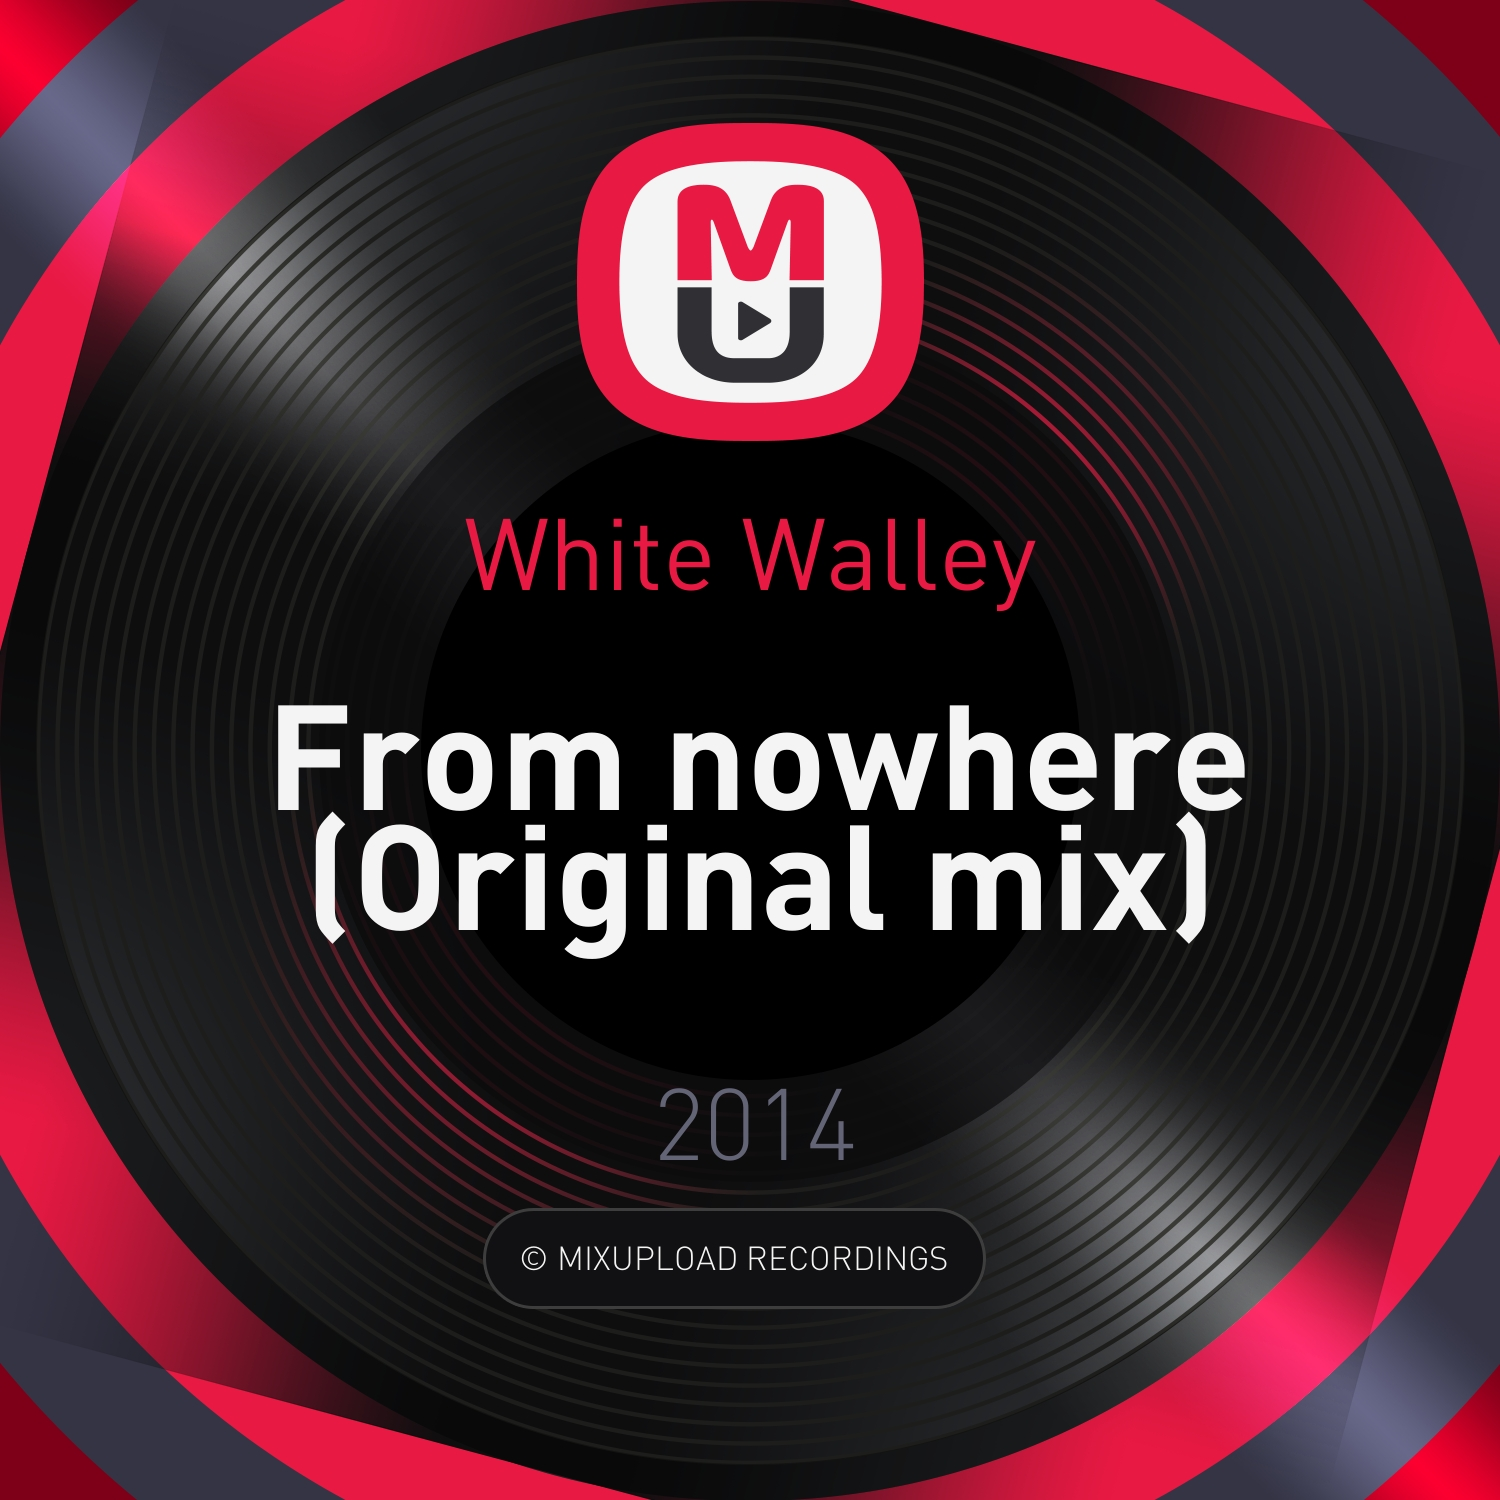 White Walley - From nowhere (Original mix)